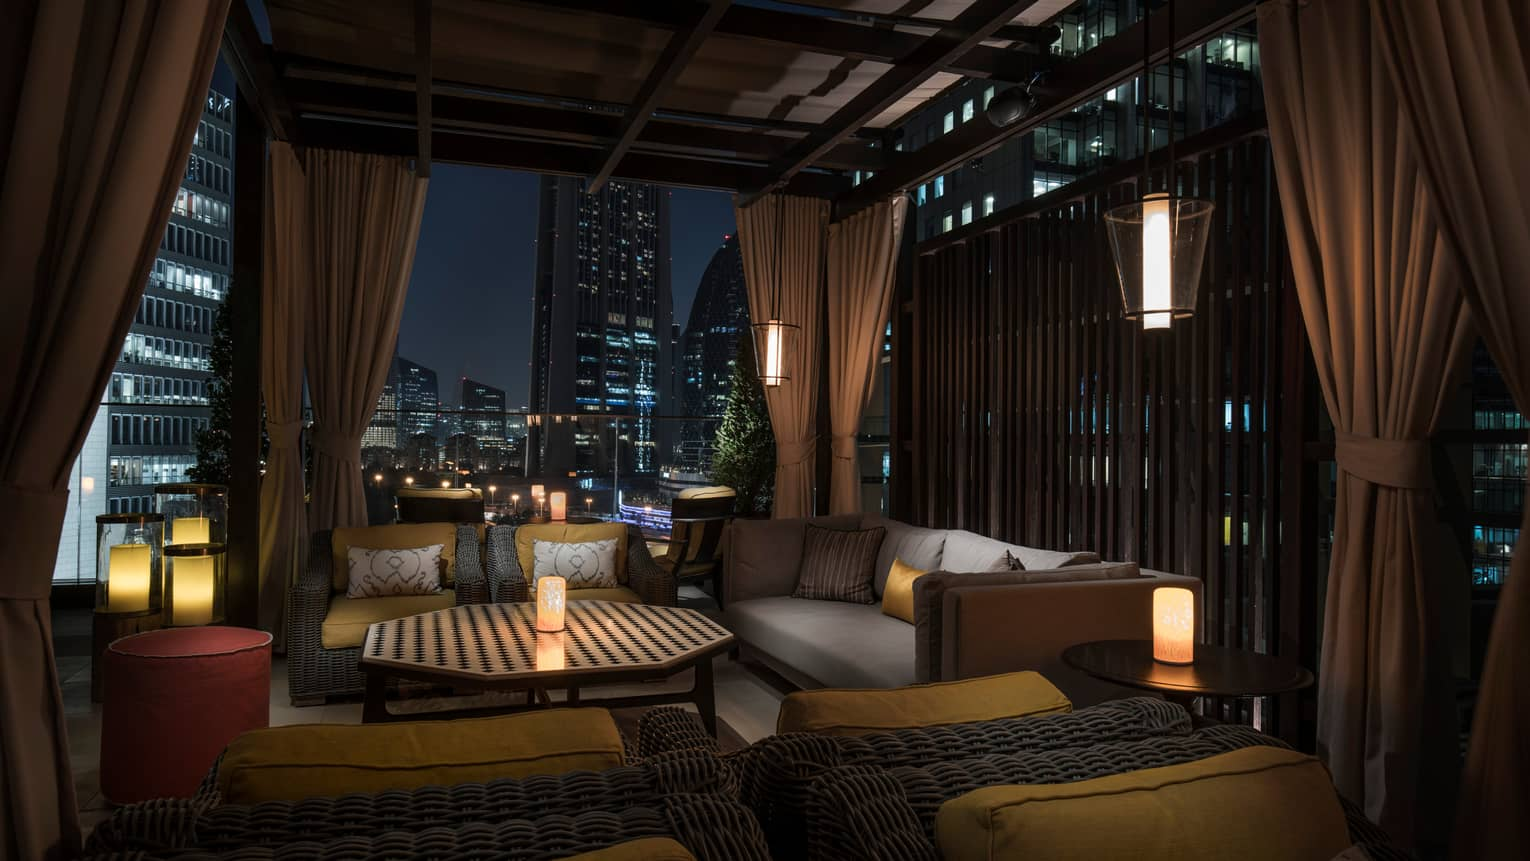 the living room with sky bar images rooftop in dubai luna at four seasons hotel difc outdoor patio lounge area night candles plush cushions wood roof